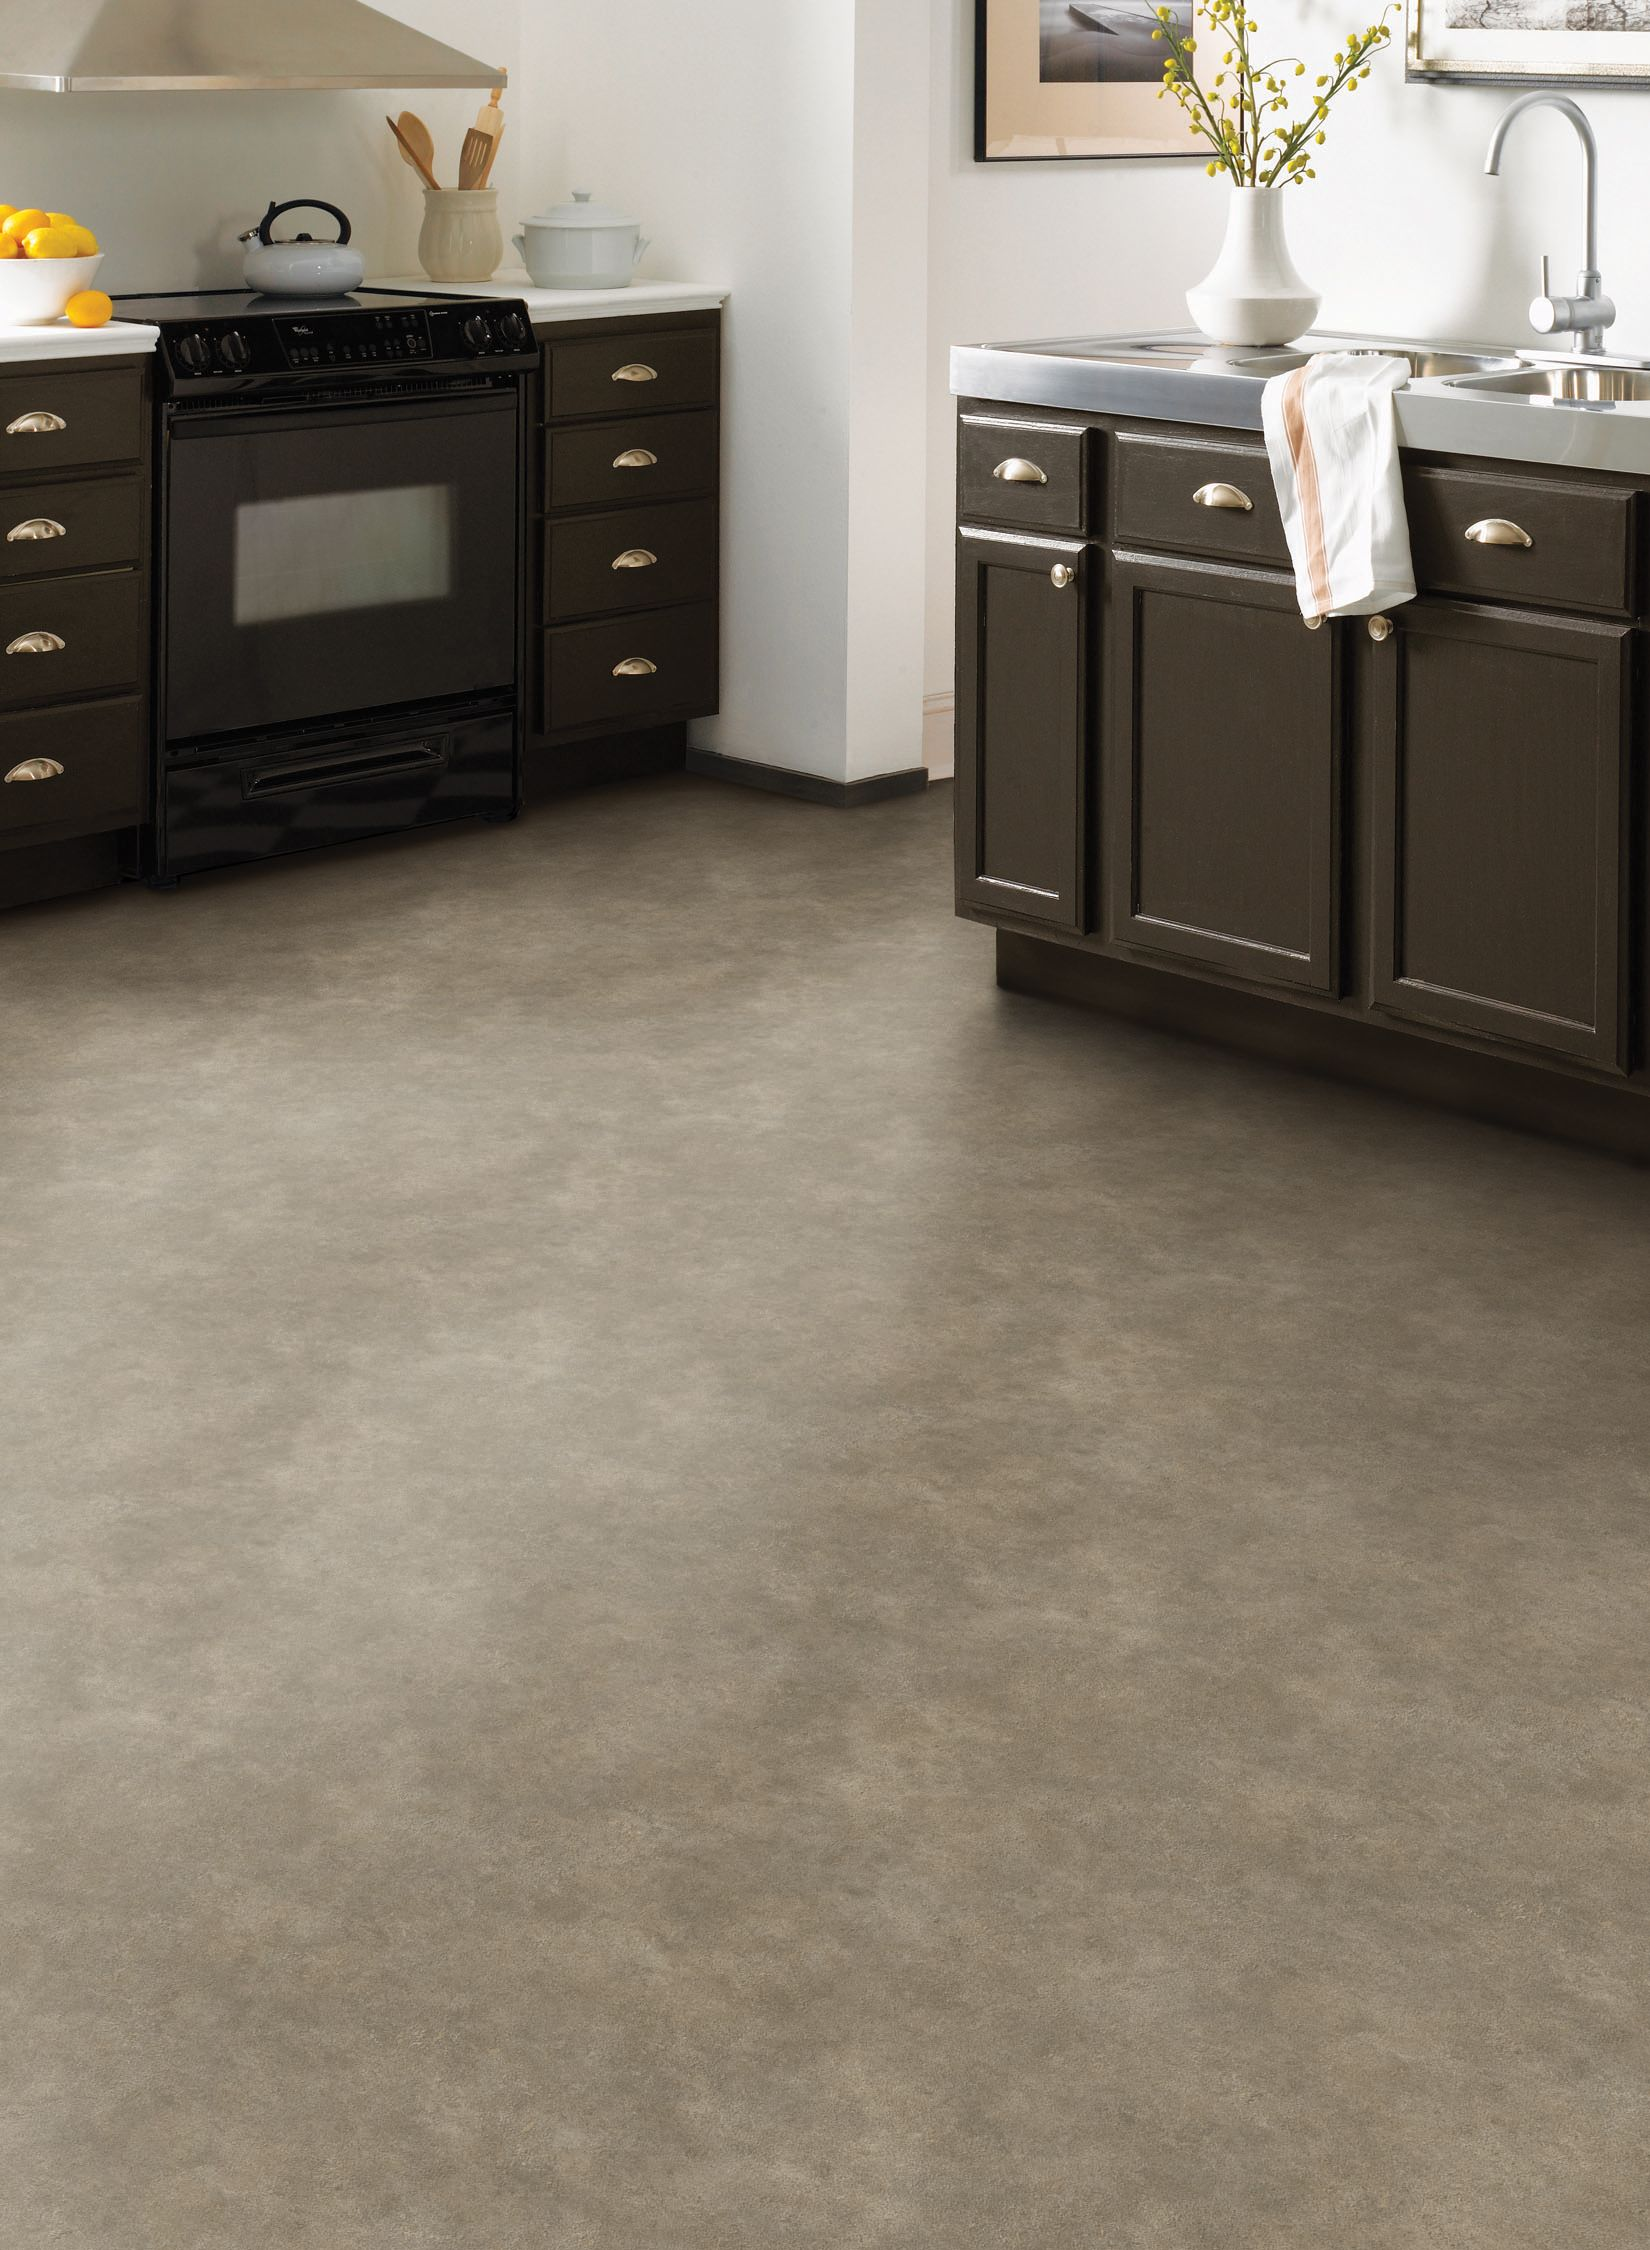 Great Floors That Remain Timeless With Any Decor Grey Concrete Sheet Vinyl Vinyl Flooring Kitchen Vinyl Flooring Kitchen Flooring